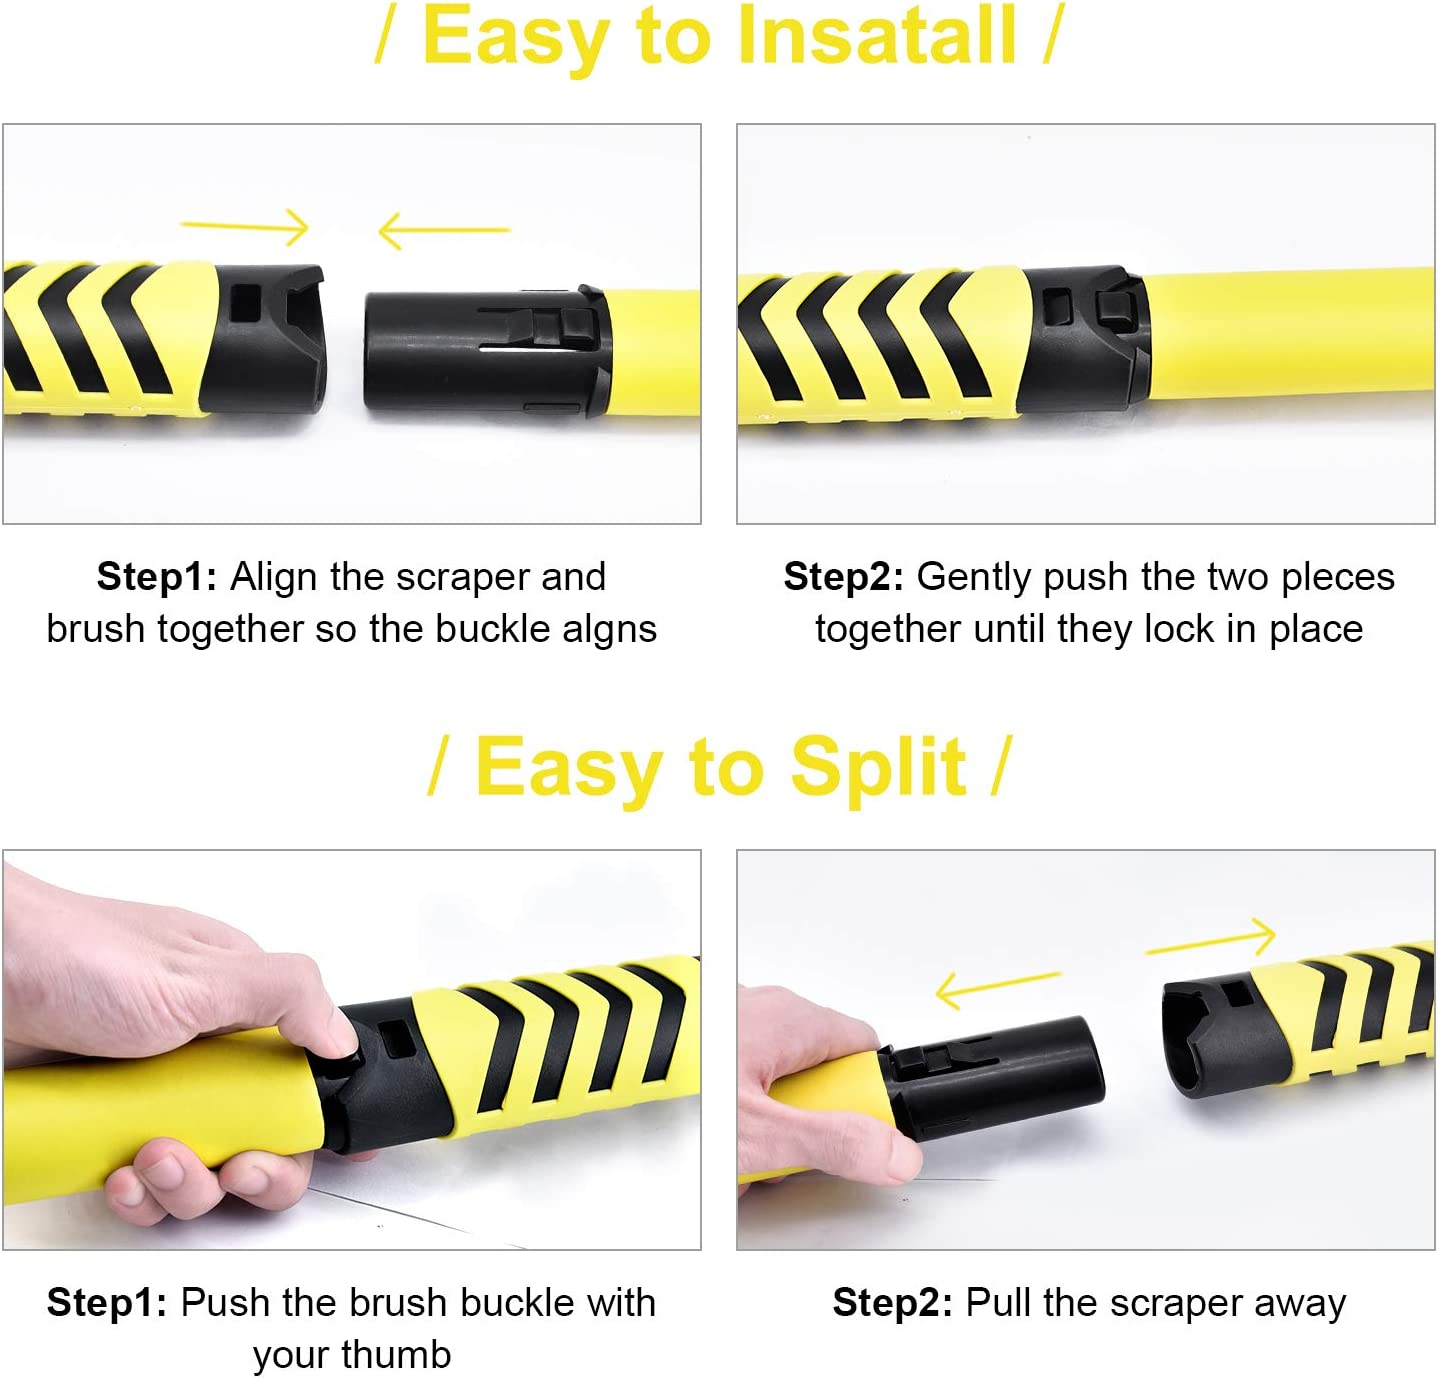 34 to 41.5 Extendable Snow Removal Broom for Car Auto SUV Truck Windshield Windows Car Snow Brush with Detachable Ice Scraper and Ergonomic Foam Grip